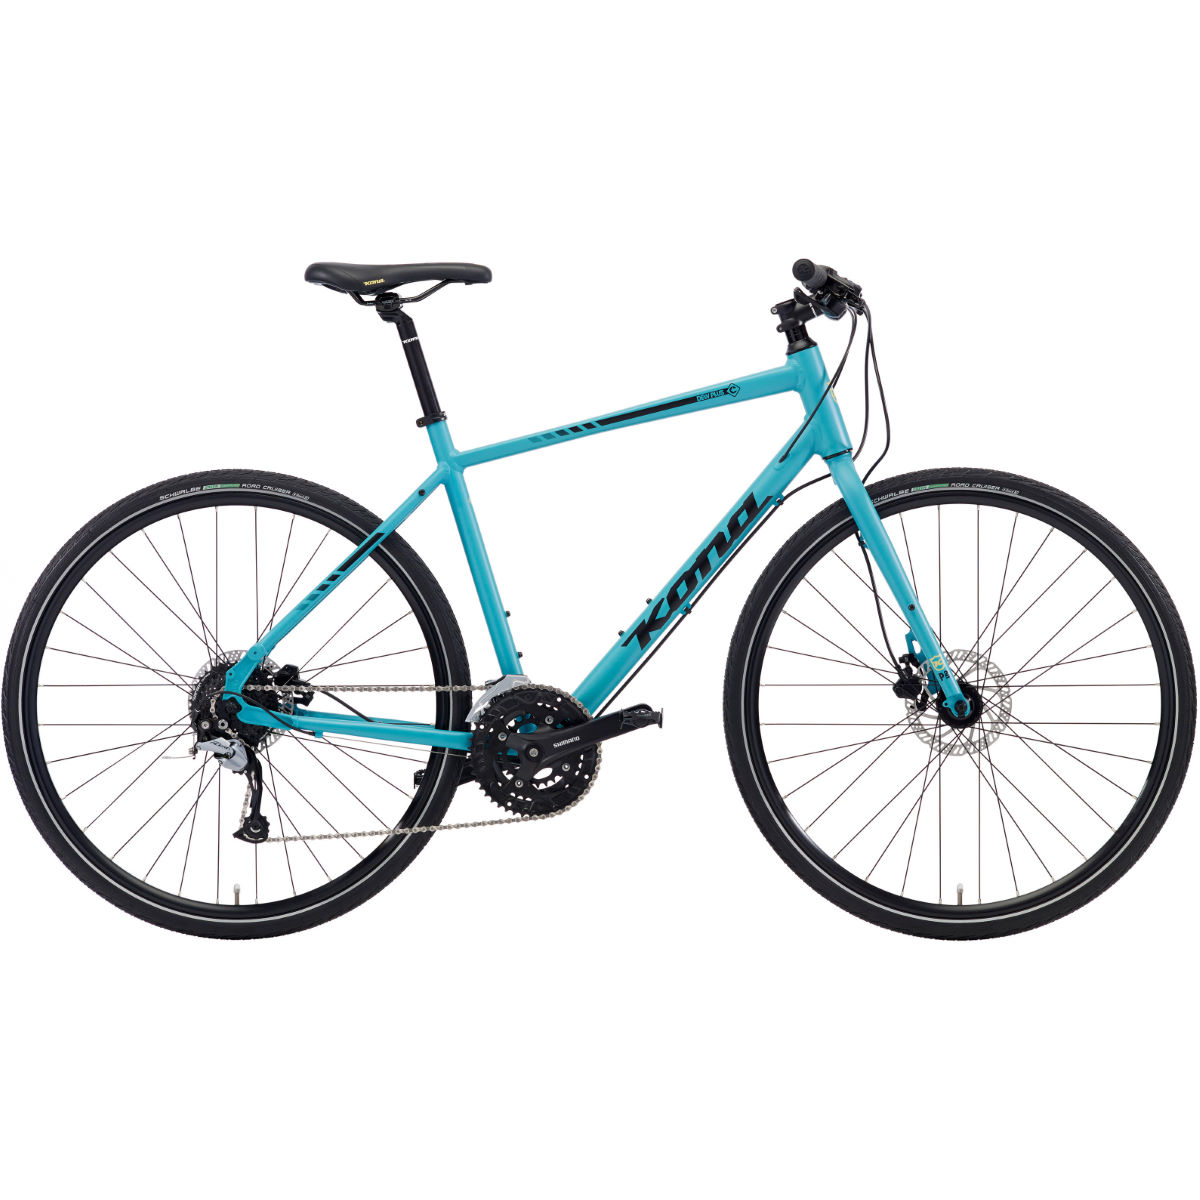 Kona Dew Plus (2018) Road Bike Blue 52cm Stock Bike - Bicicletas de ciudad e híbridas